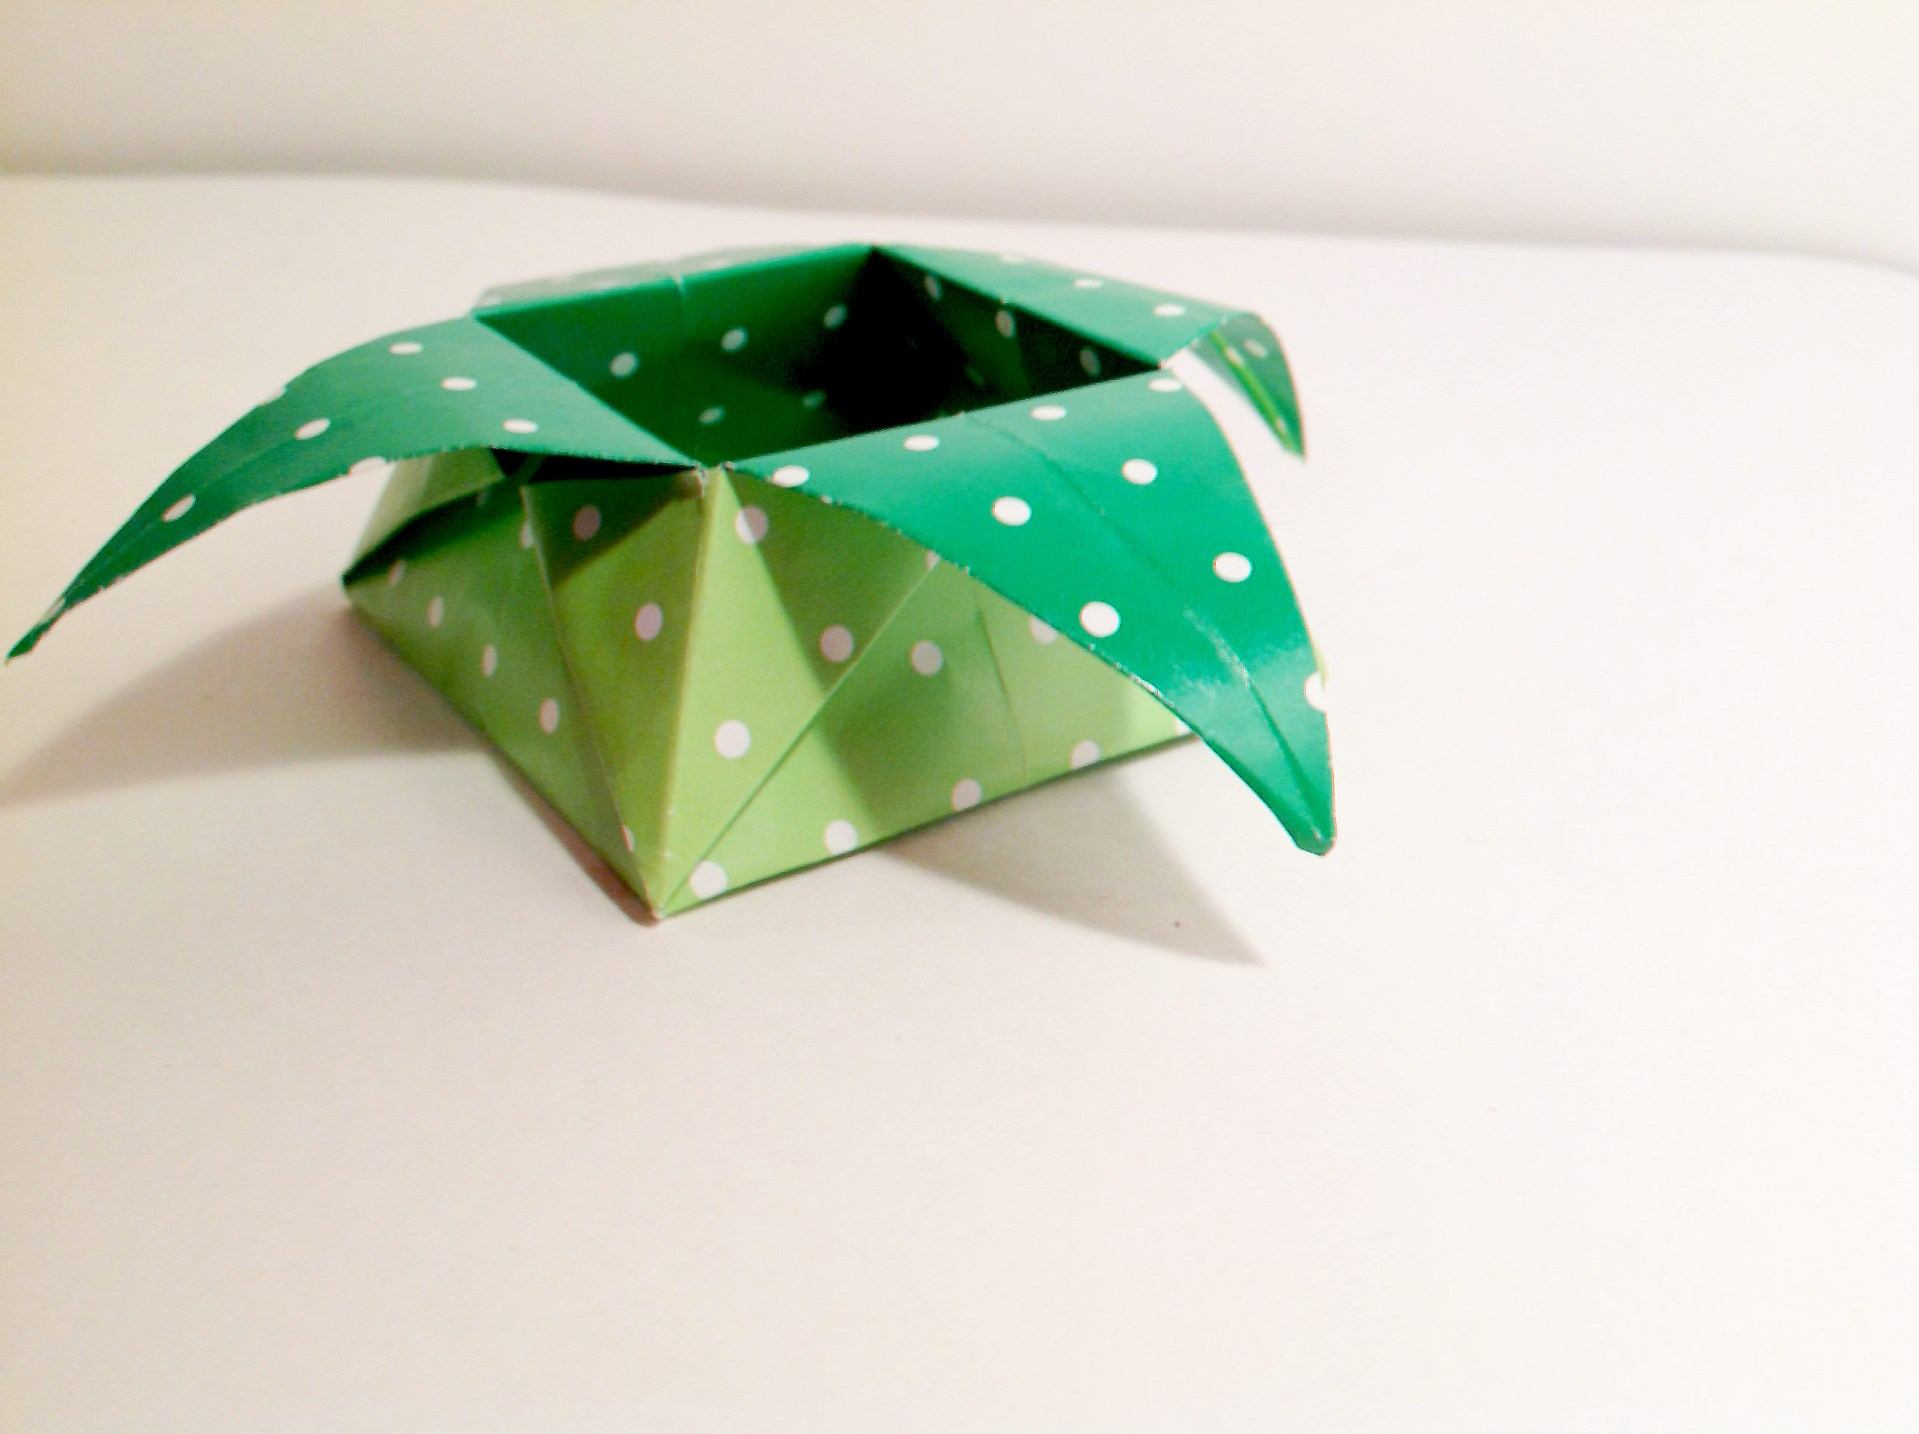 Green Polka Dot Star Shaped Origami Box by Carrie Gates